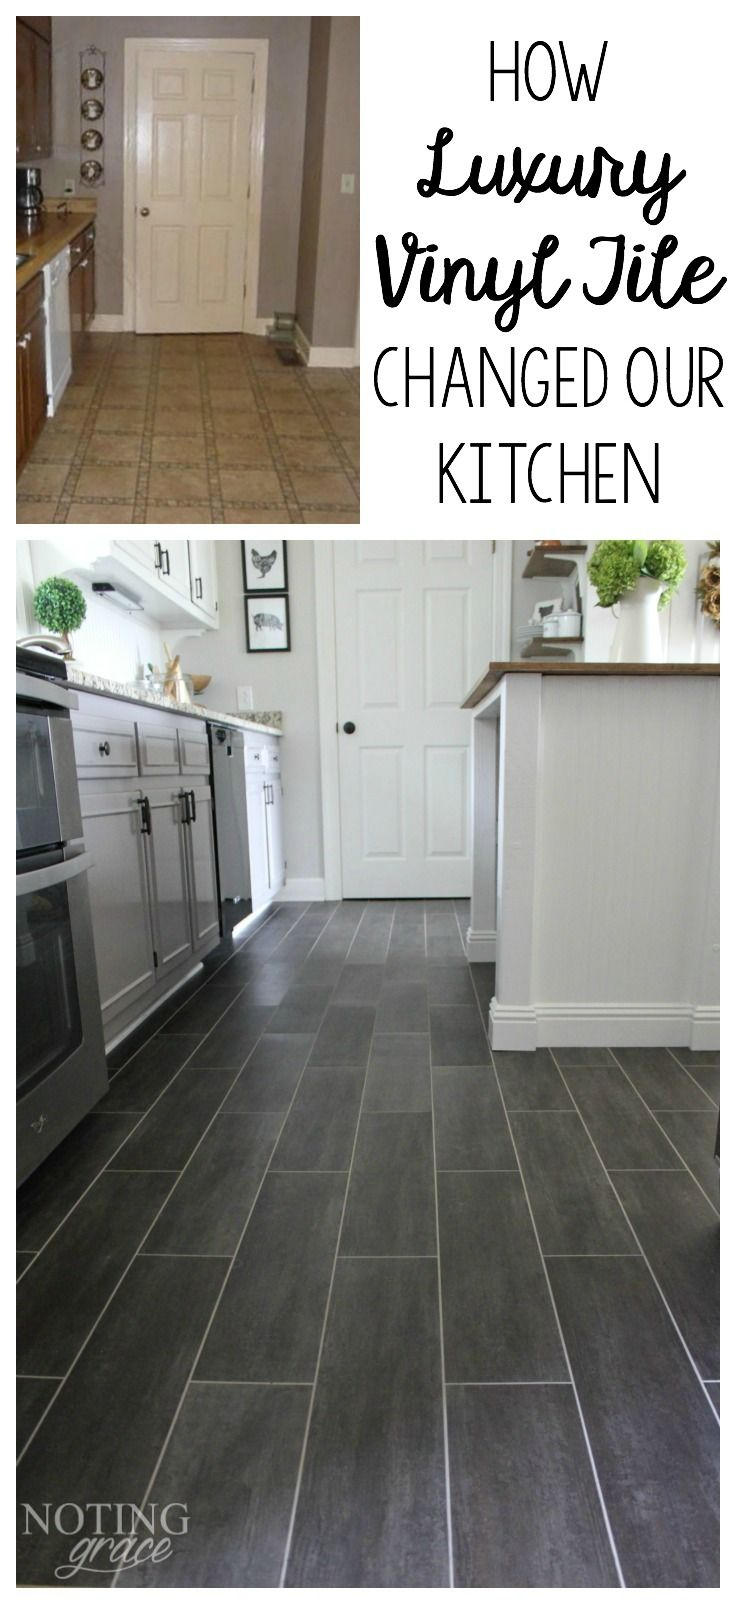 DIY Kitchen Flooring   kitchen ideas   Pinterest   Luxury vinyl tile     It took only 3 days and  400 to completely transform our kitchen with DIY  Flooring   groutable Luxury Vinyl Tile